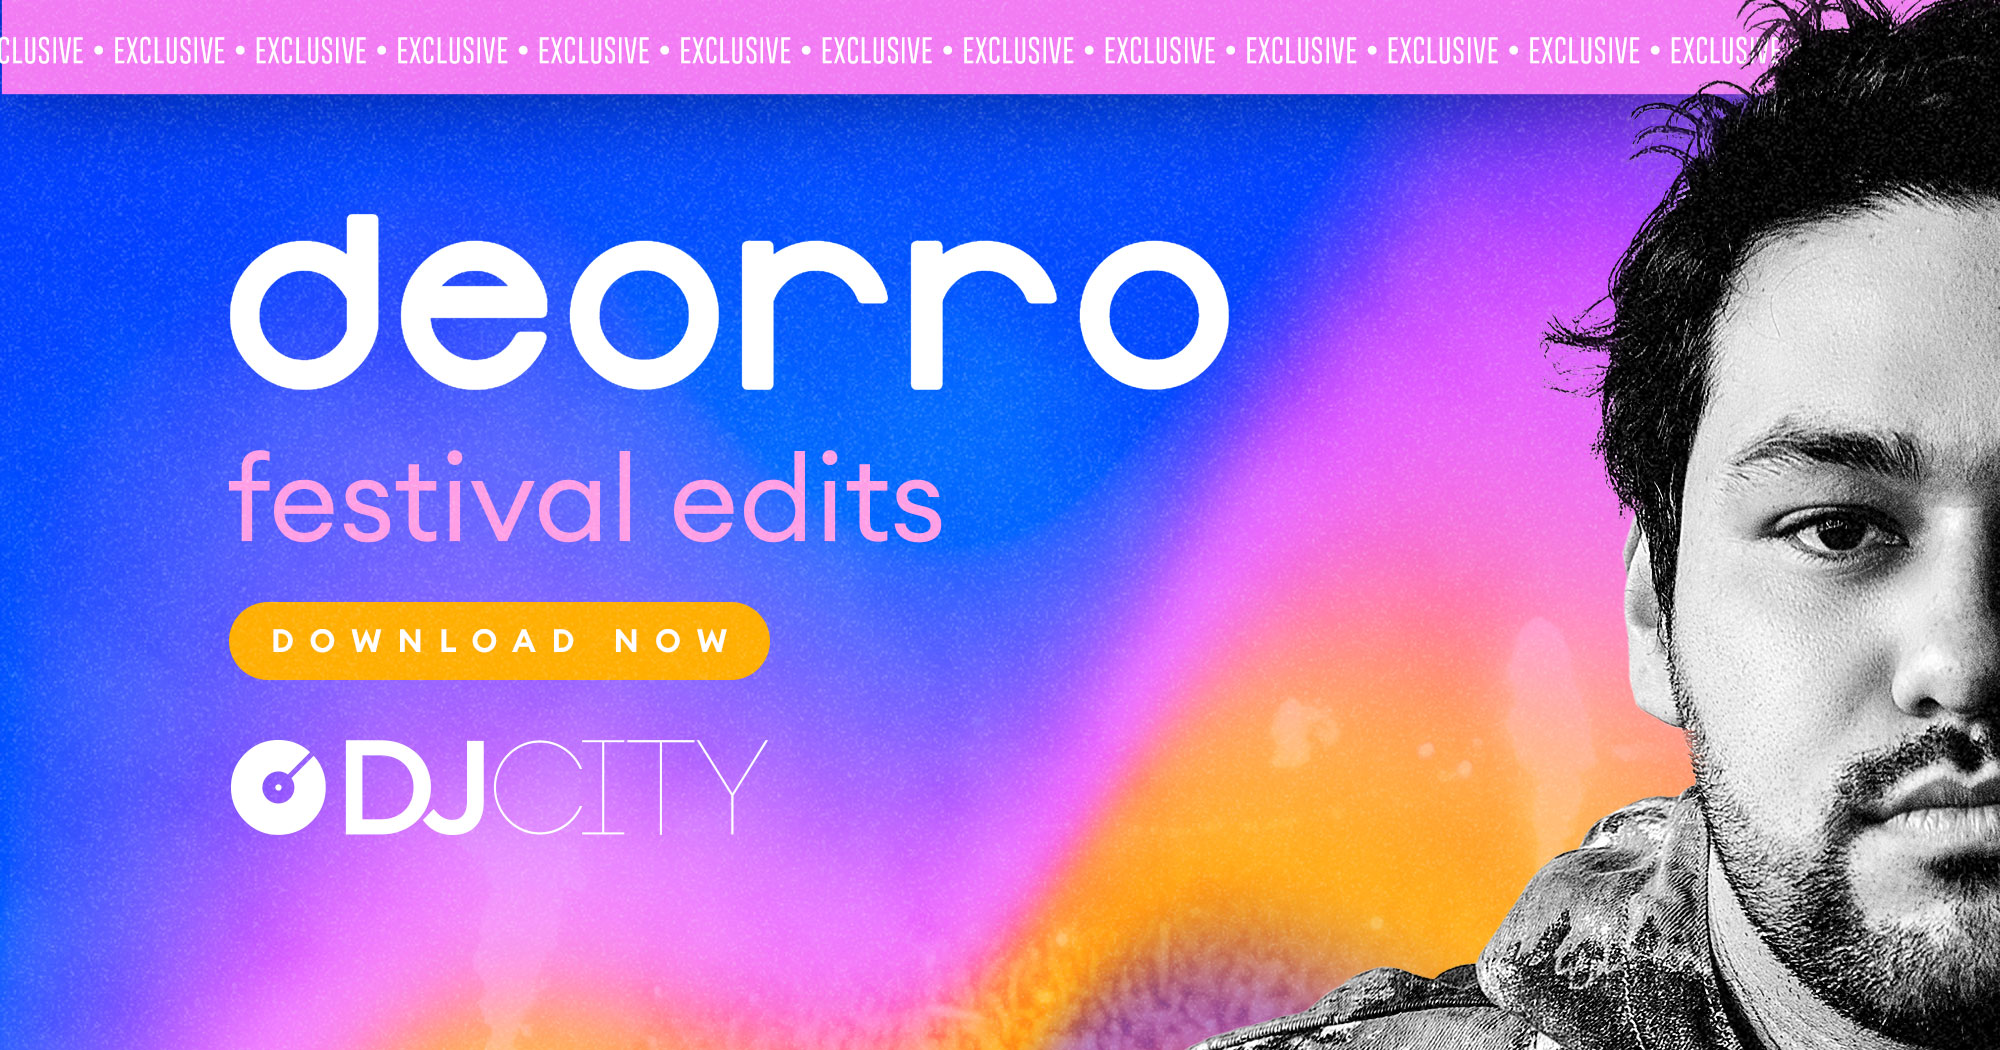 Deorro Releases Two Packs of Festival Edits Exclusively on DJcity